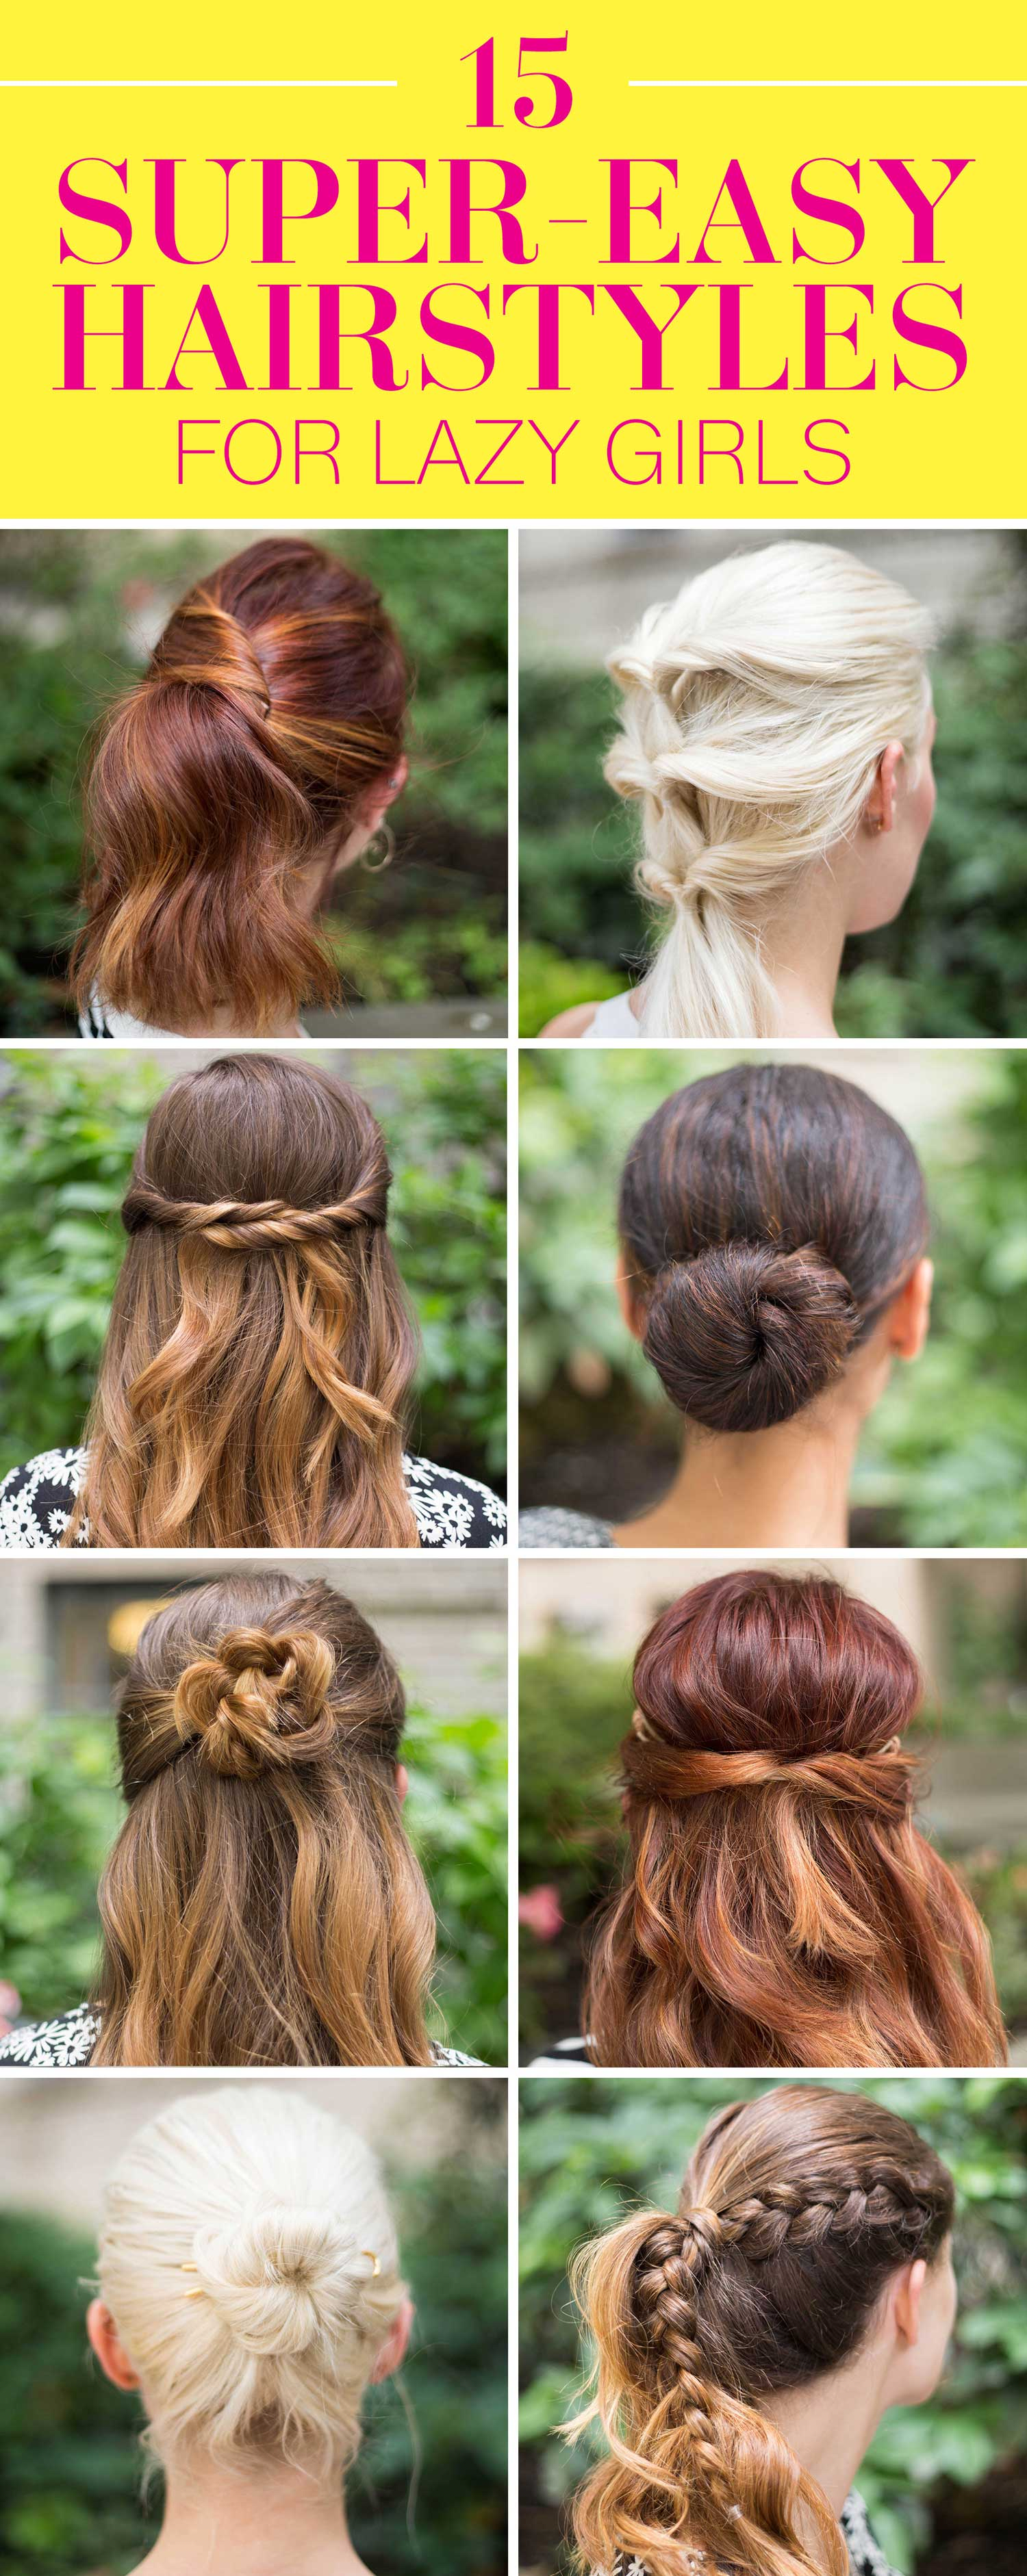 15 Super Easy Hairstyles for Girls in 2016  Three Step Hairstyles for Girls